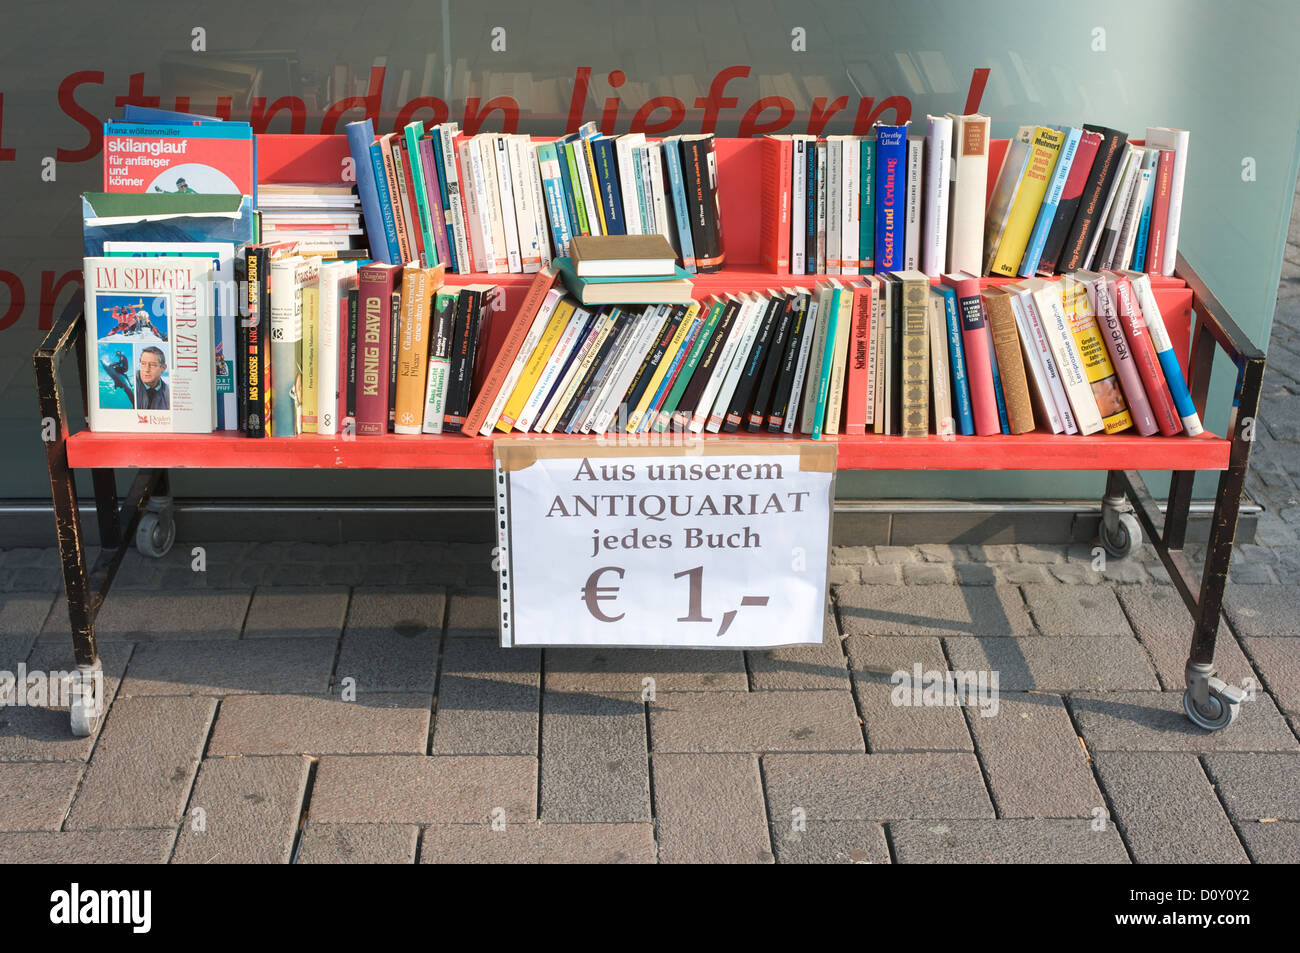 Secondhand books for sale - Stock Image